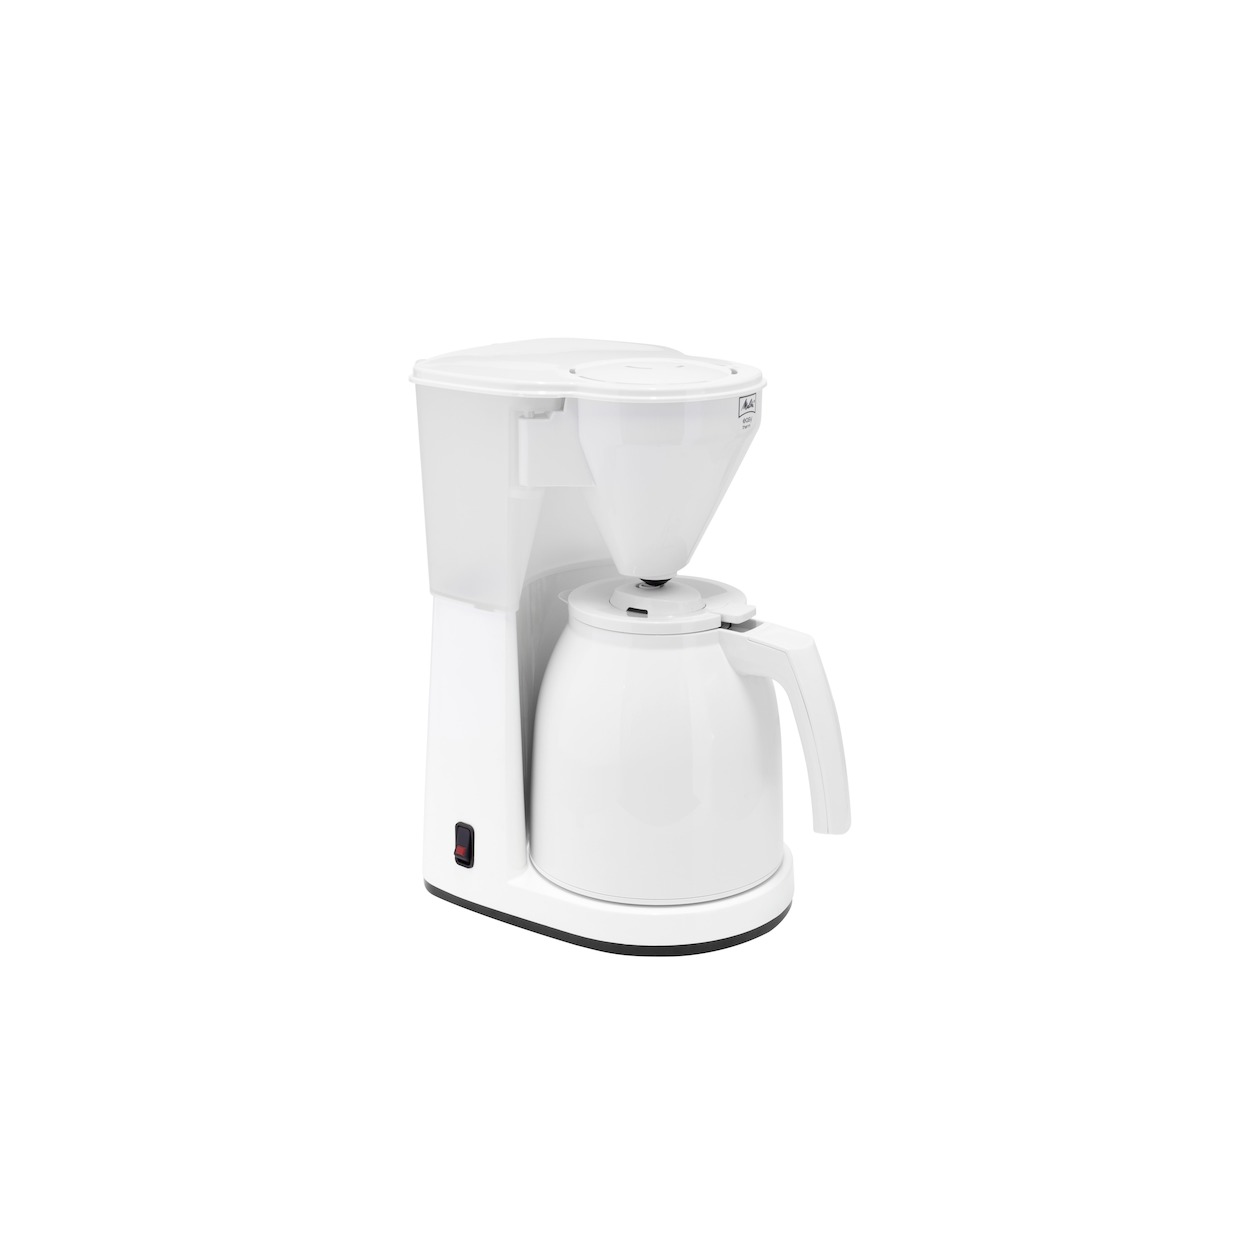 Melitta koffiefilter apparaat EasyTherm wit